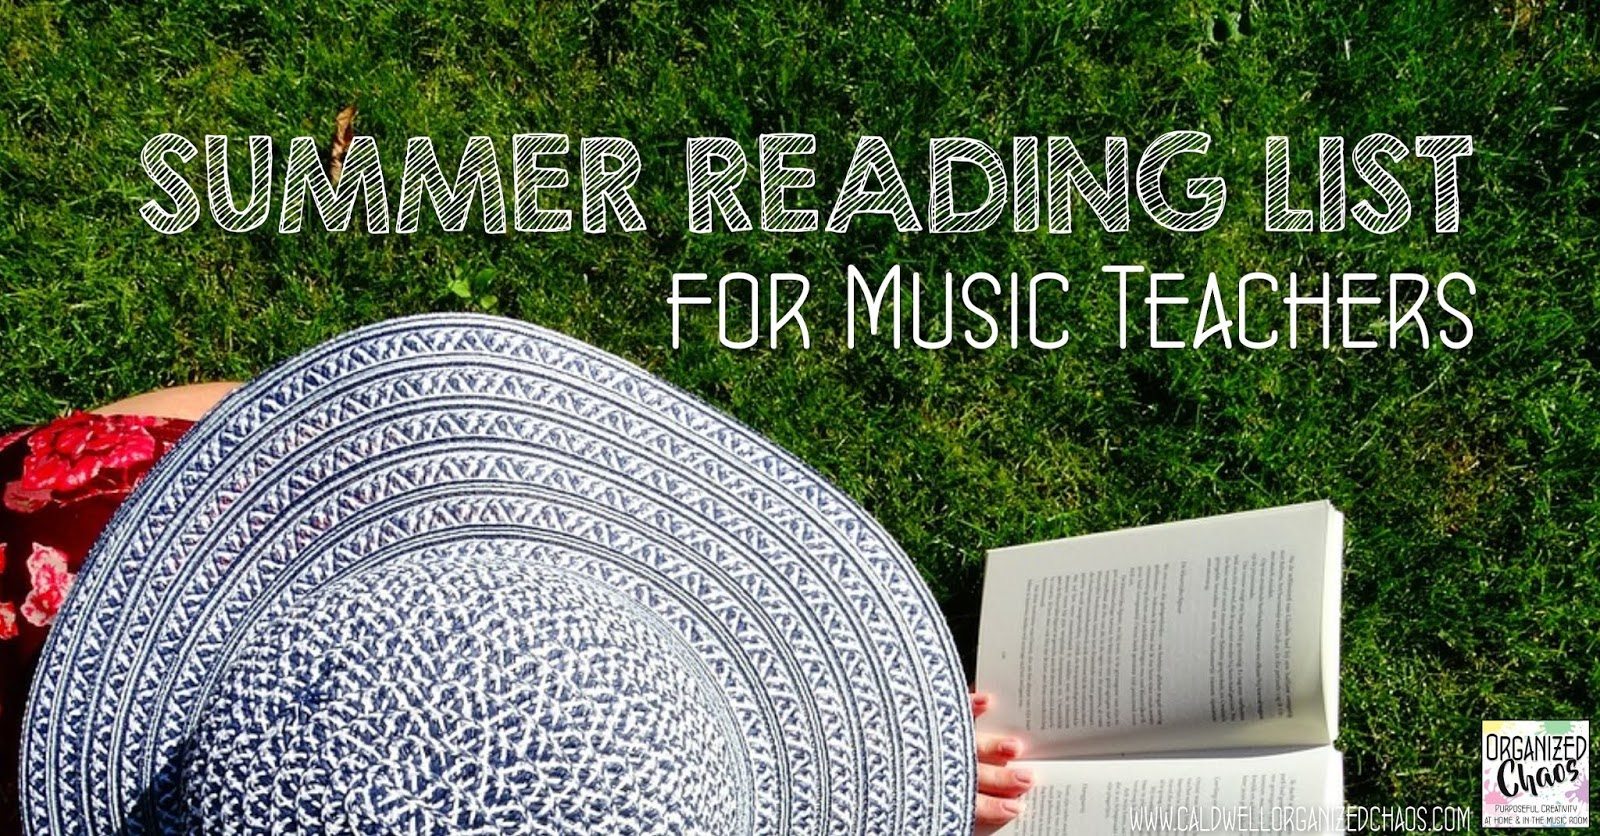 Summer Reading List For And By Teachers >> Summer Reading List For Music Teachers Organized Chaos